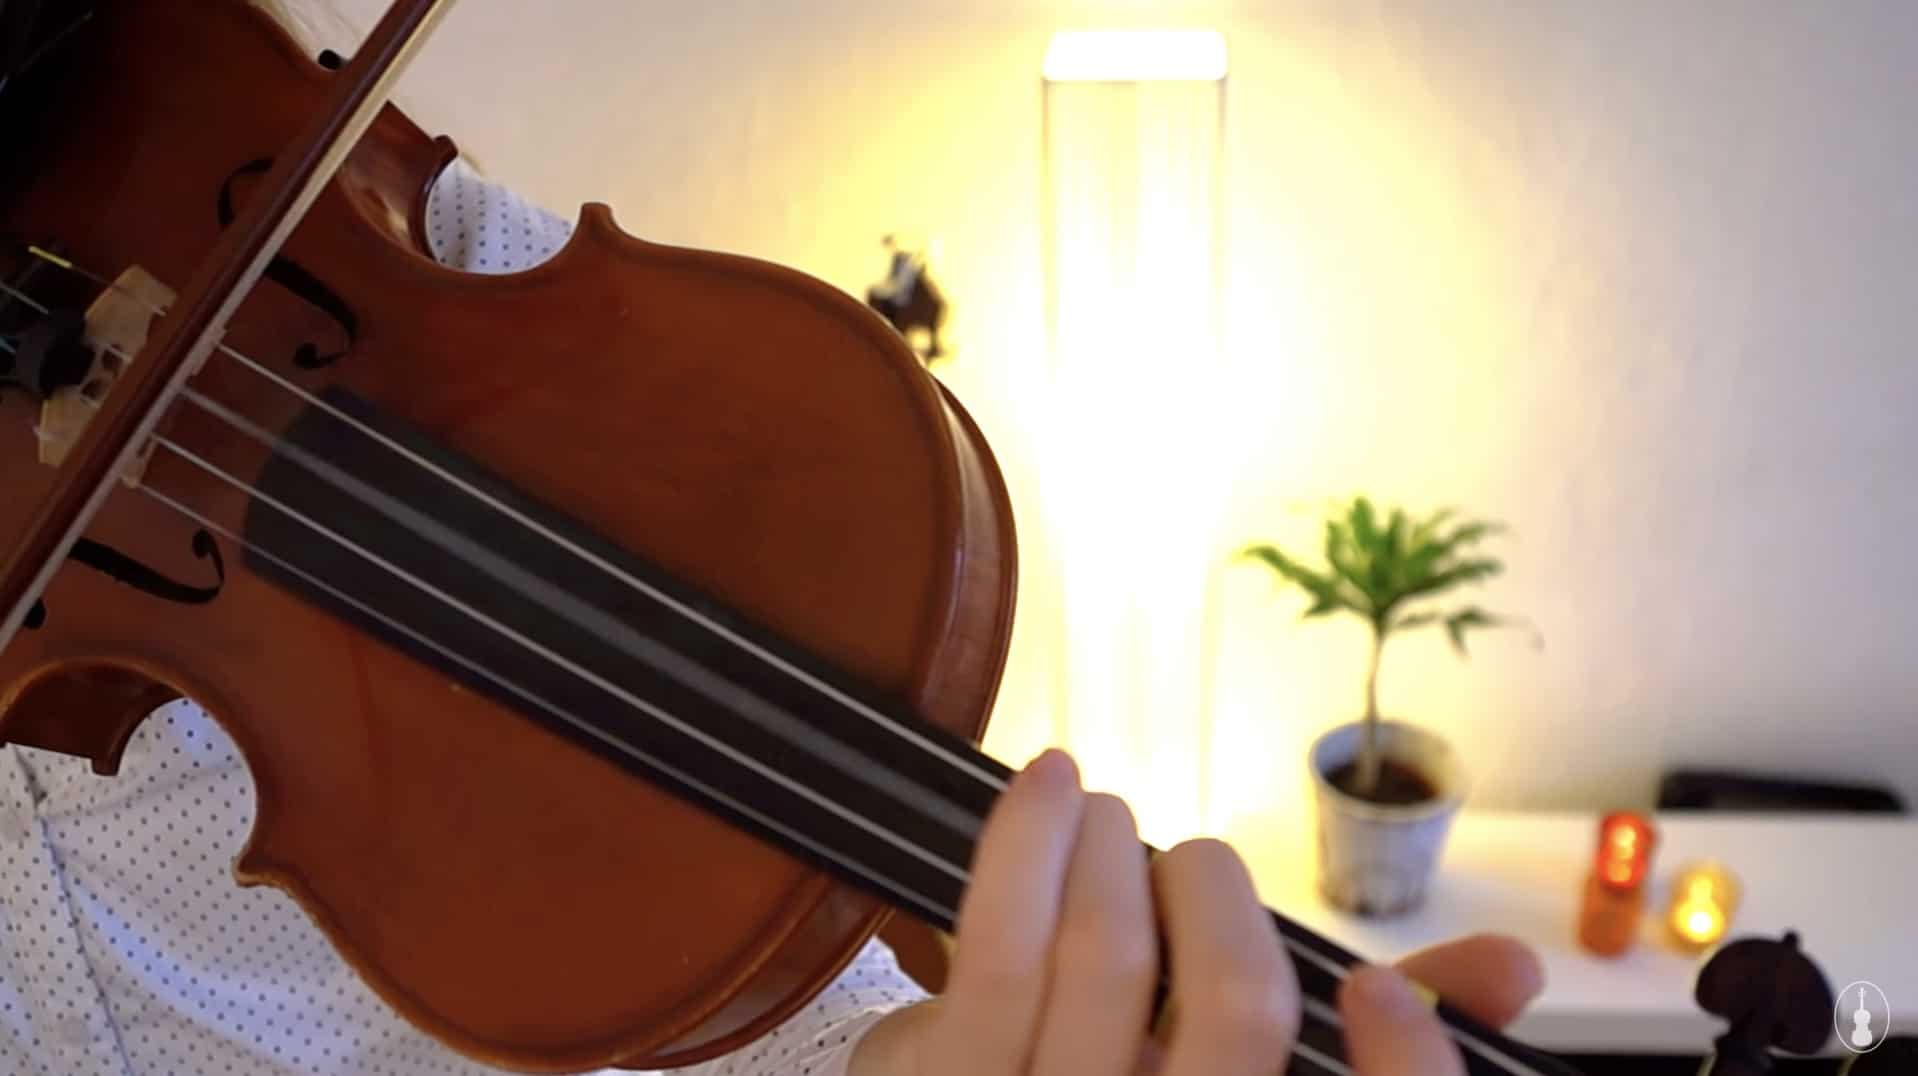 How to play Deck the Halls – Violin Lesson